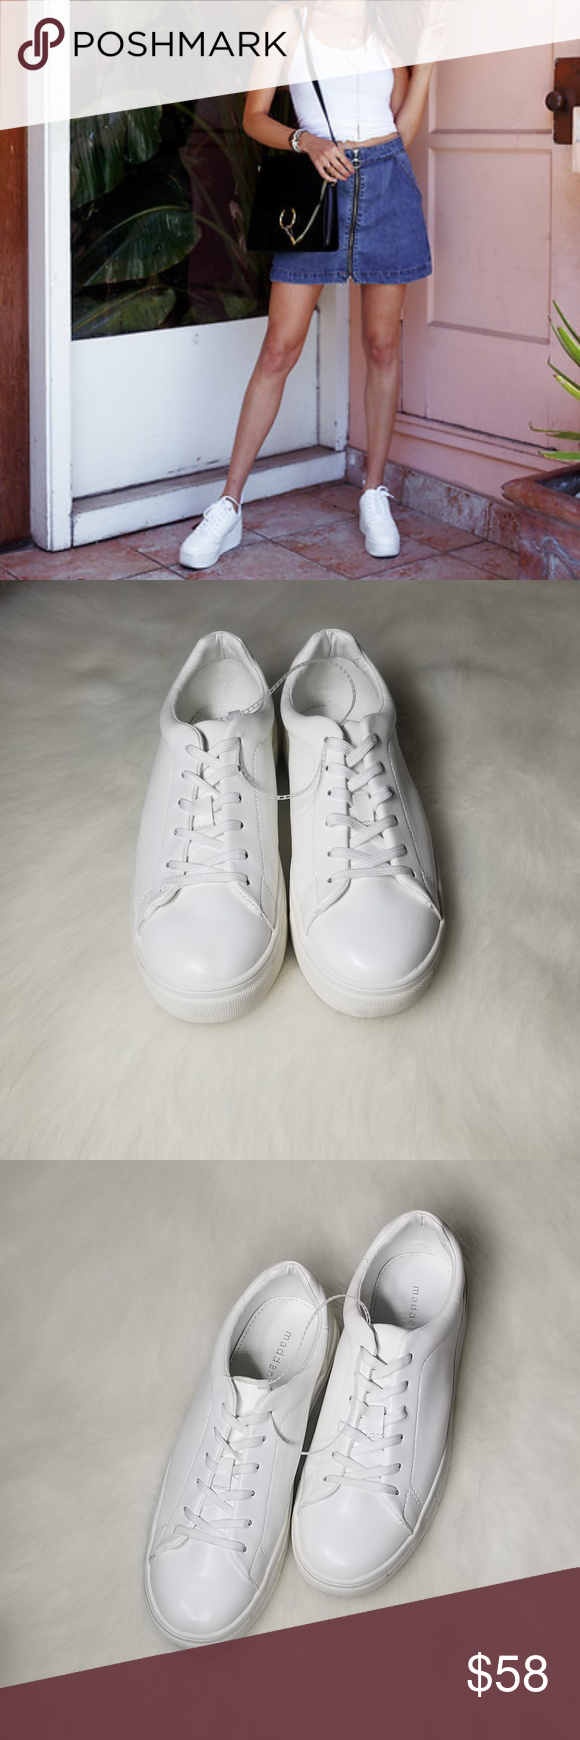 1f587d0245e Madden Girl All White Round Toe Sneakers Up for sale brand new out of box  Madden